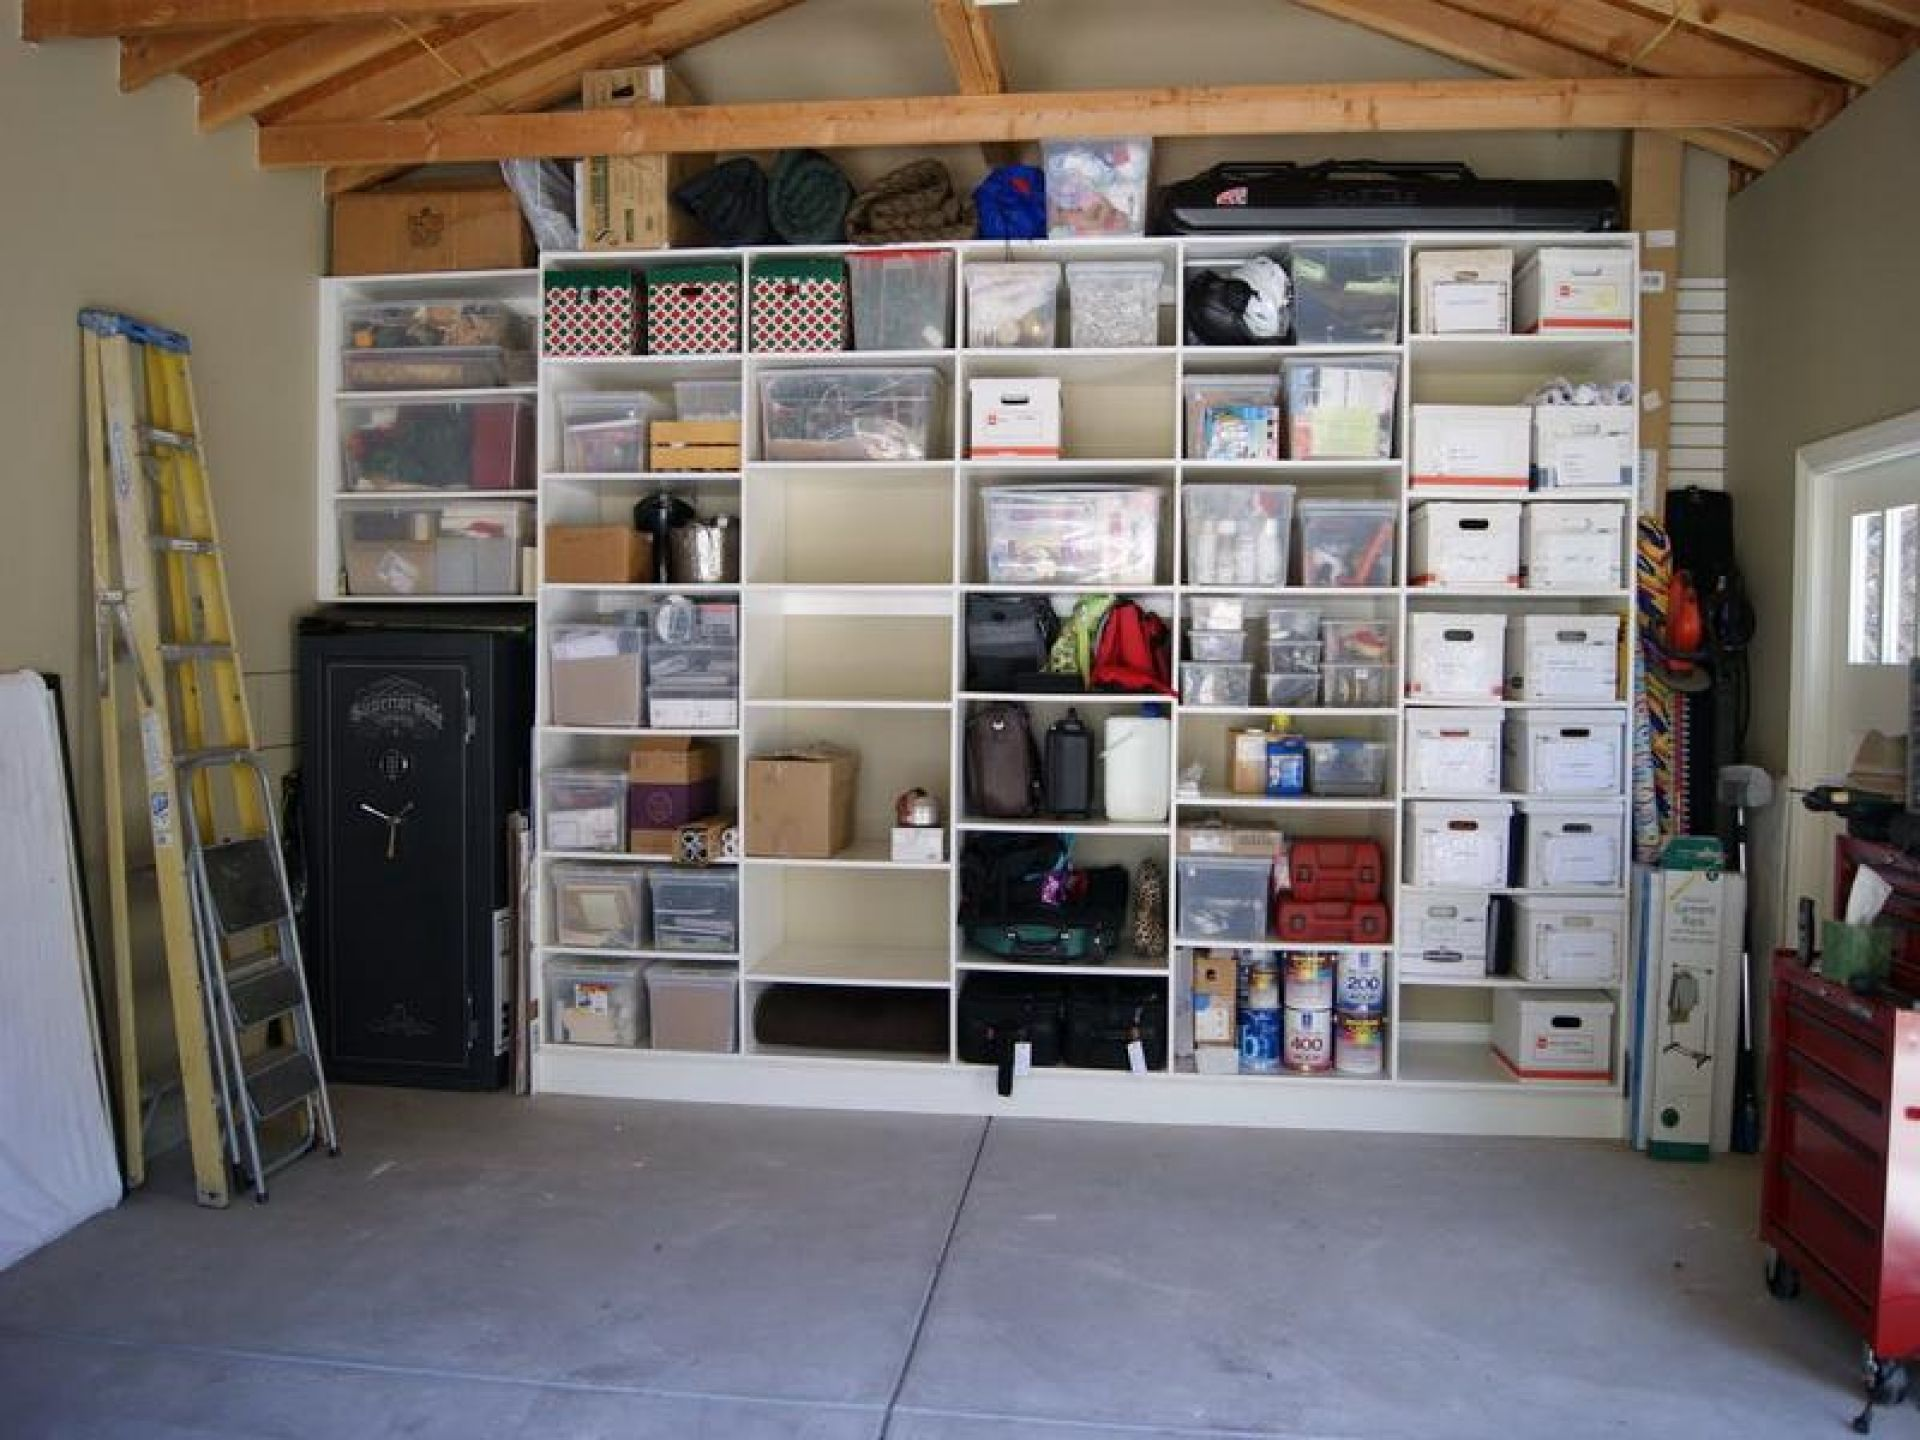 Back of the wall cubby storage wall storage organization ideas do it yourself garage shelving ideas solutioingenieria Image collections